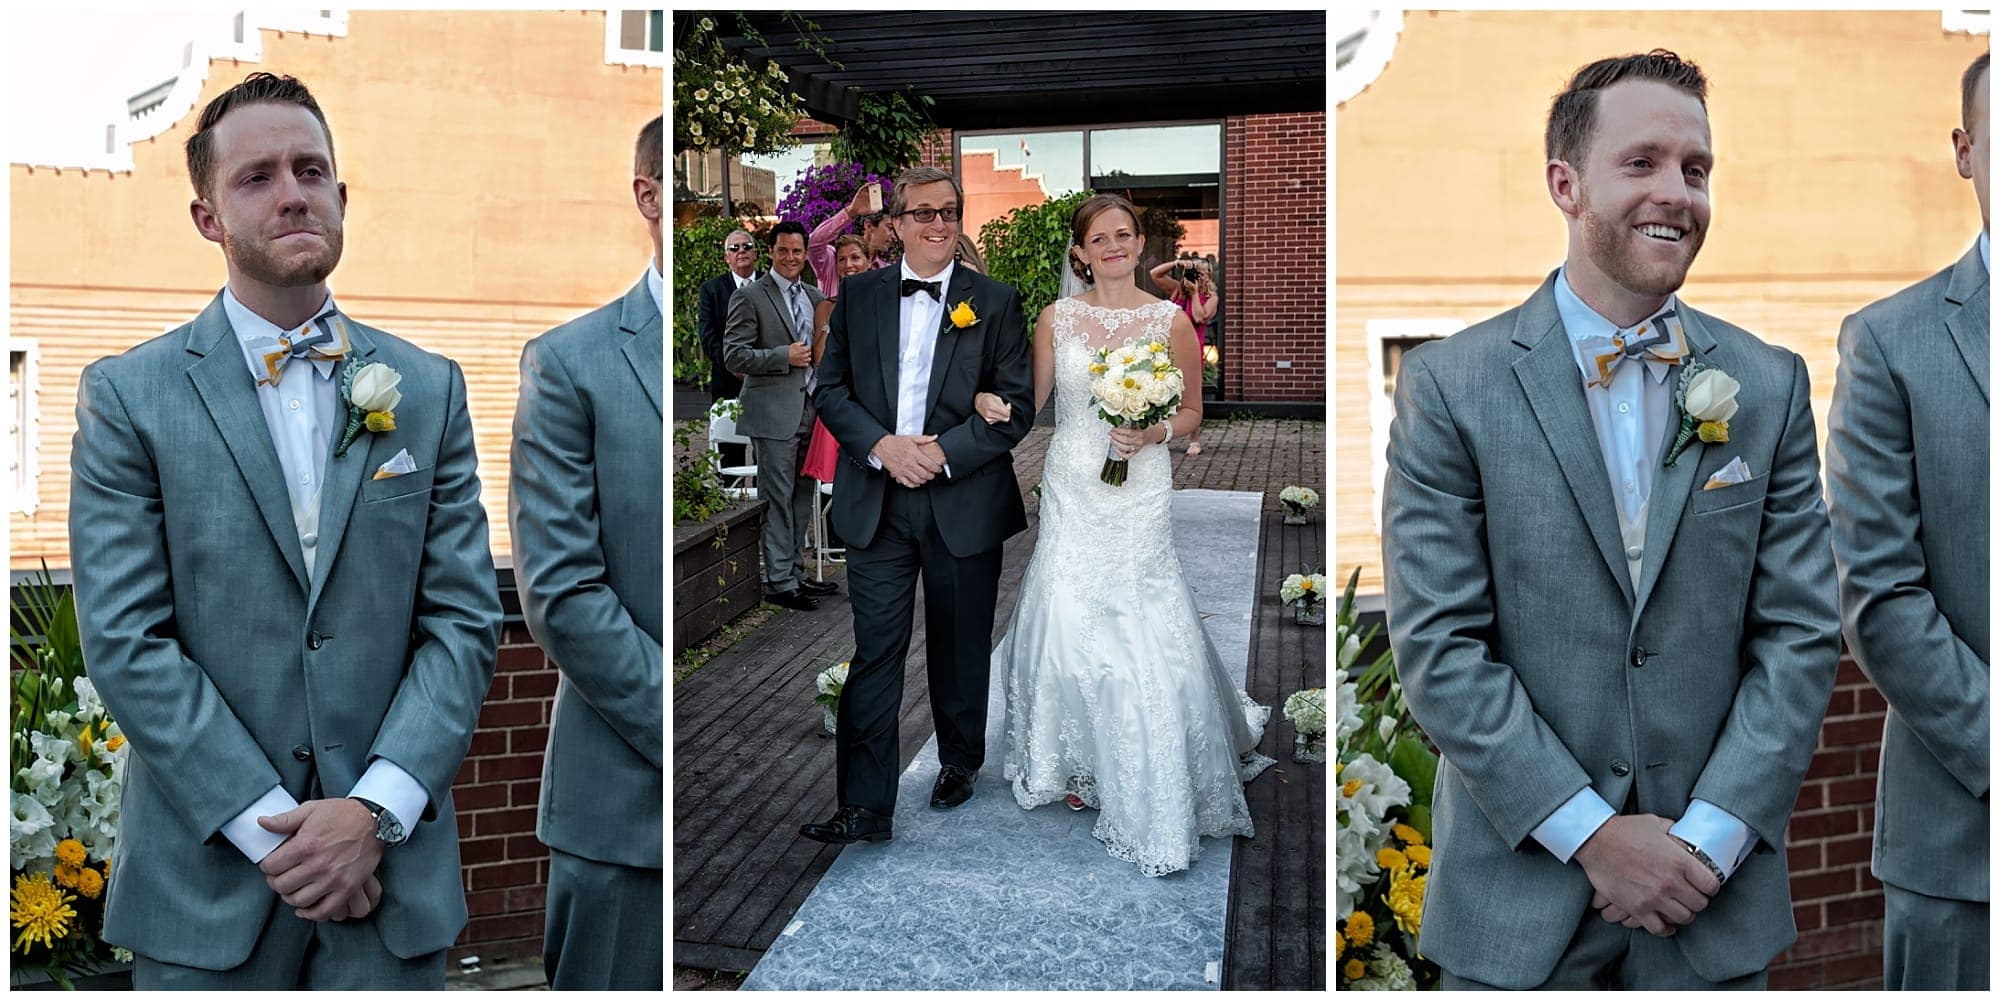 The bride walks up the aisle with her father while the groom looks on during a wedding at Prince George Hotel in Halifax.